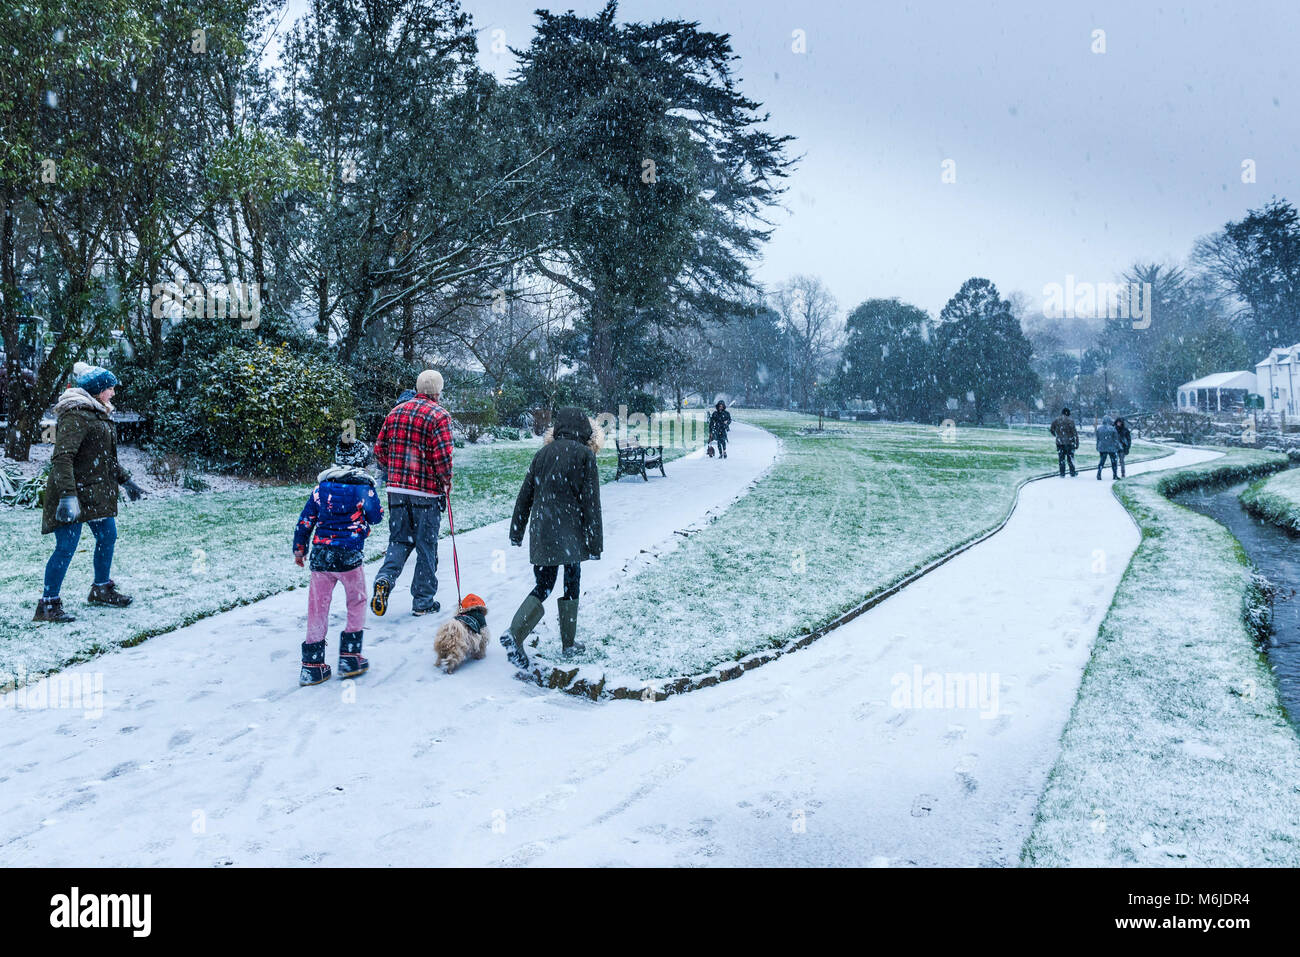 A family walking their dog through falling snow in Trenance Gardens in Newquay Cornwall. - Stock Image